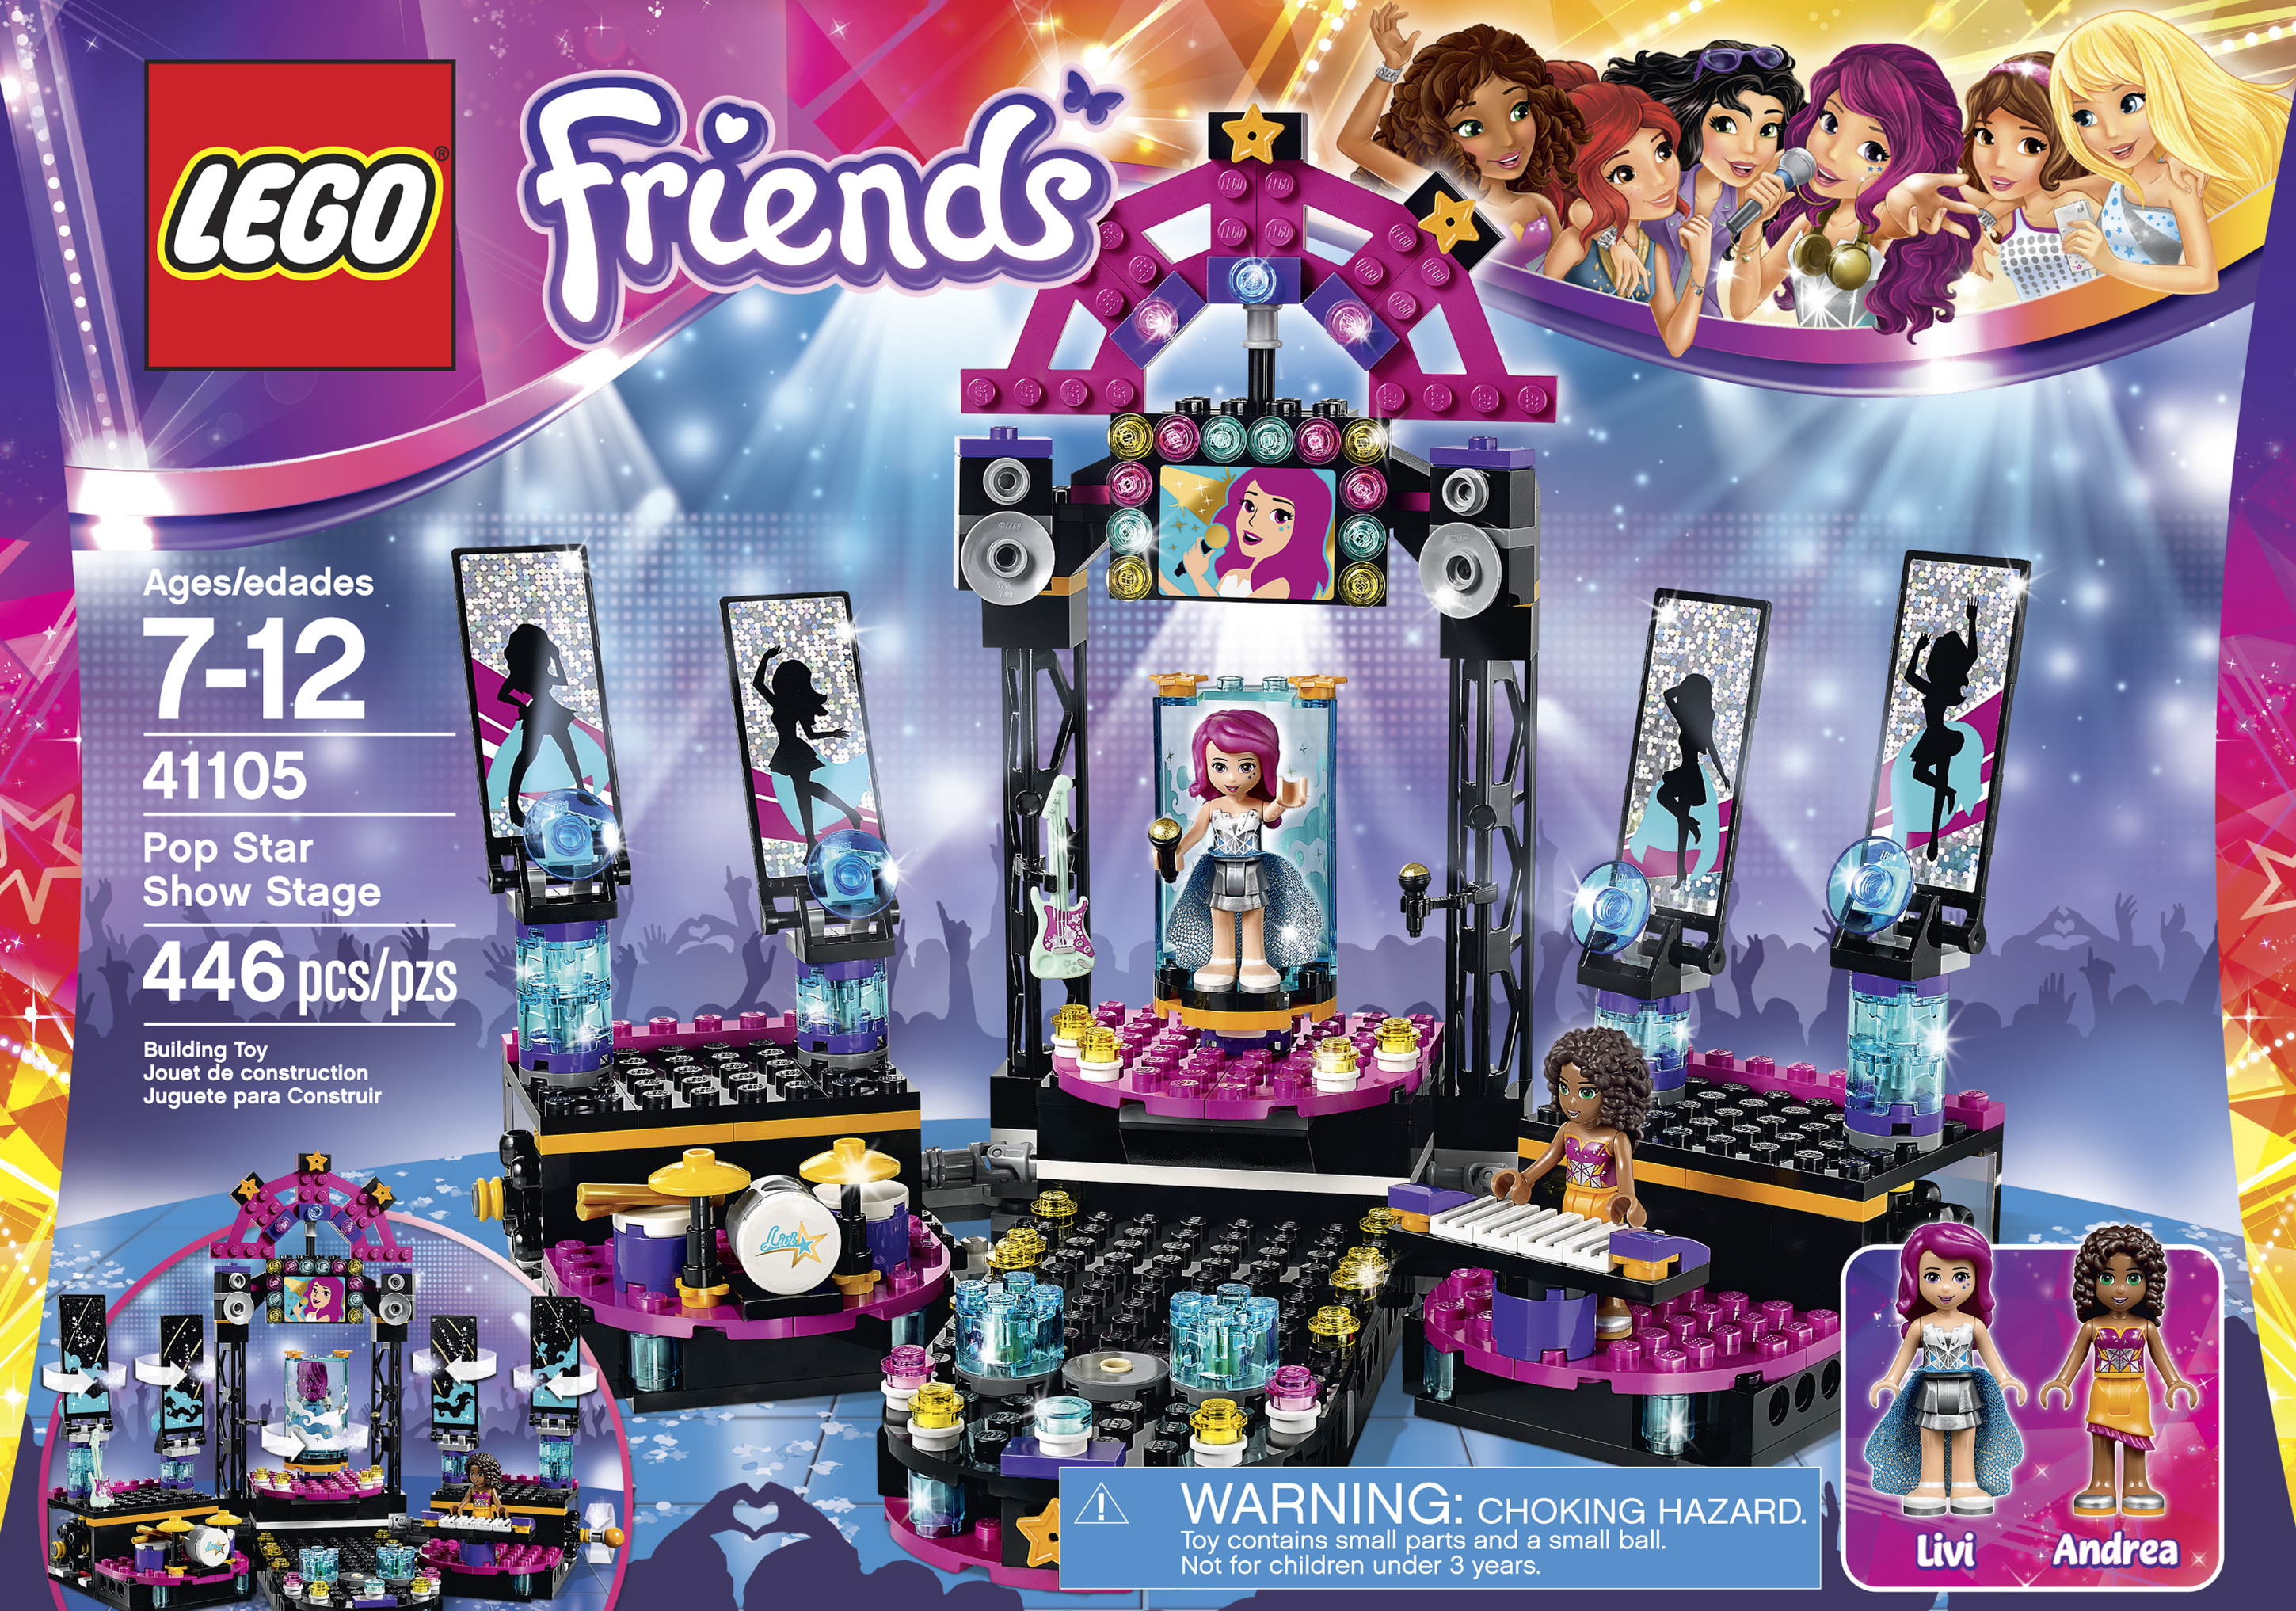 Kmart Fab 15 Toys The Answer for Christmas